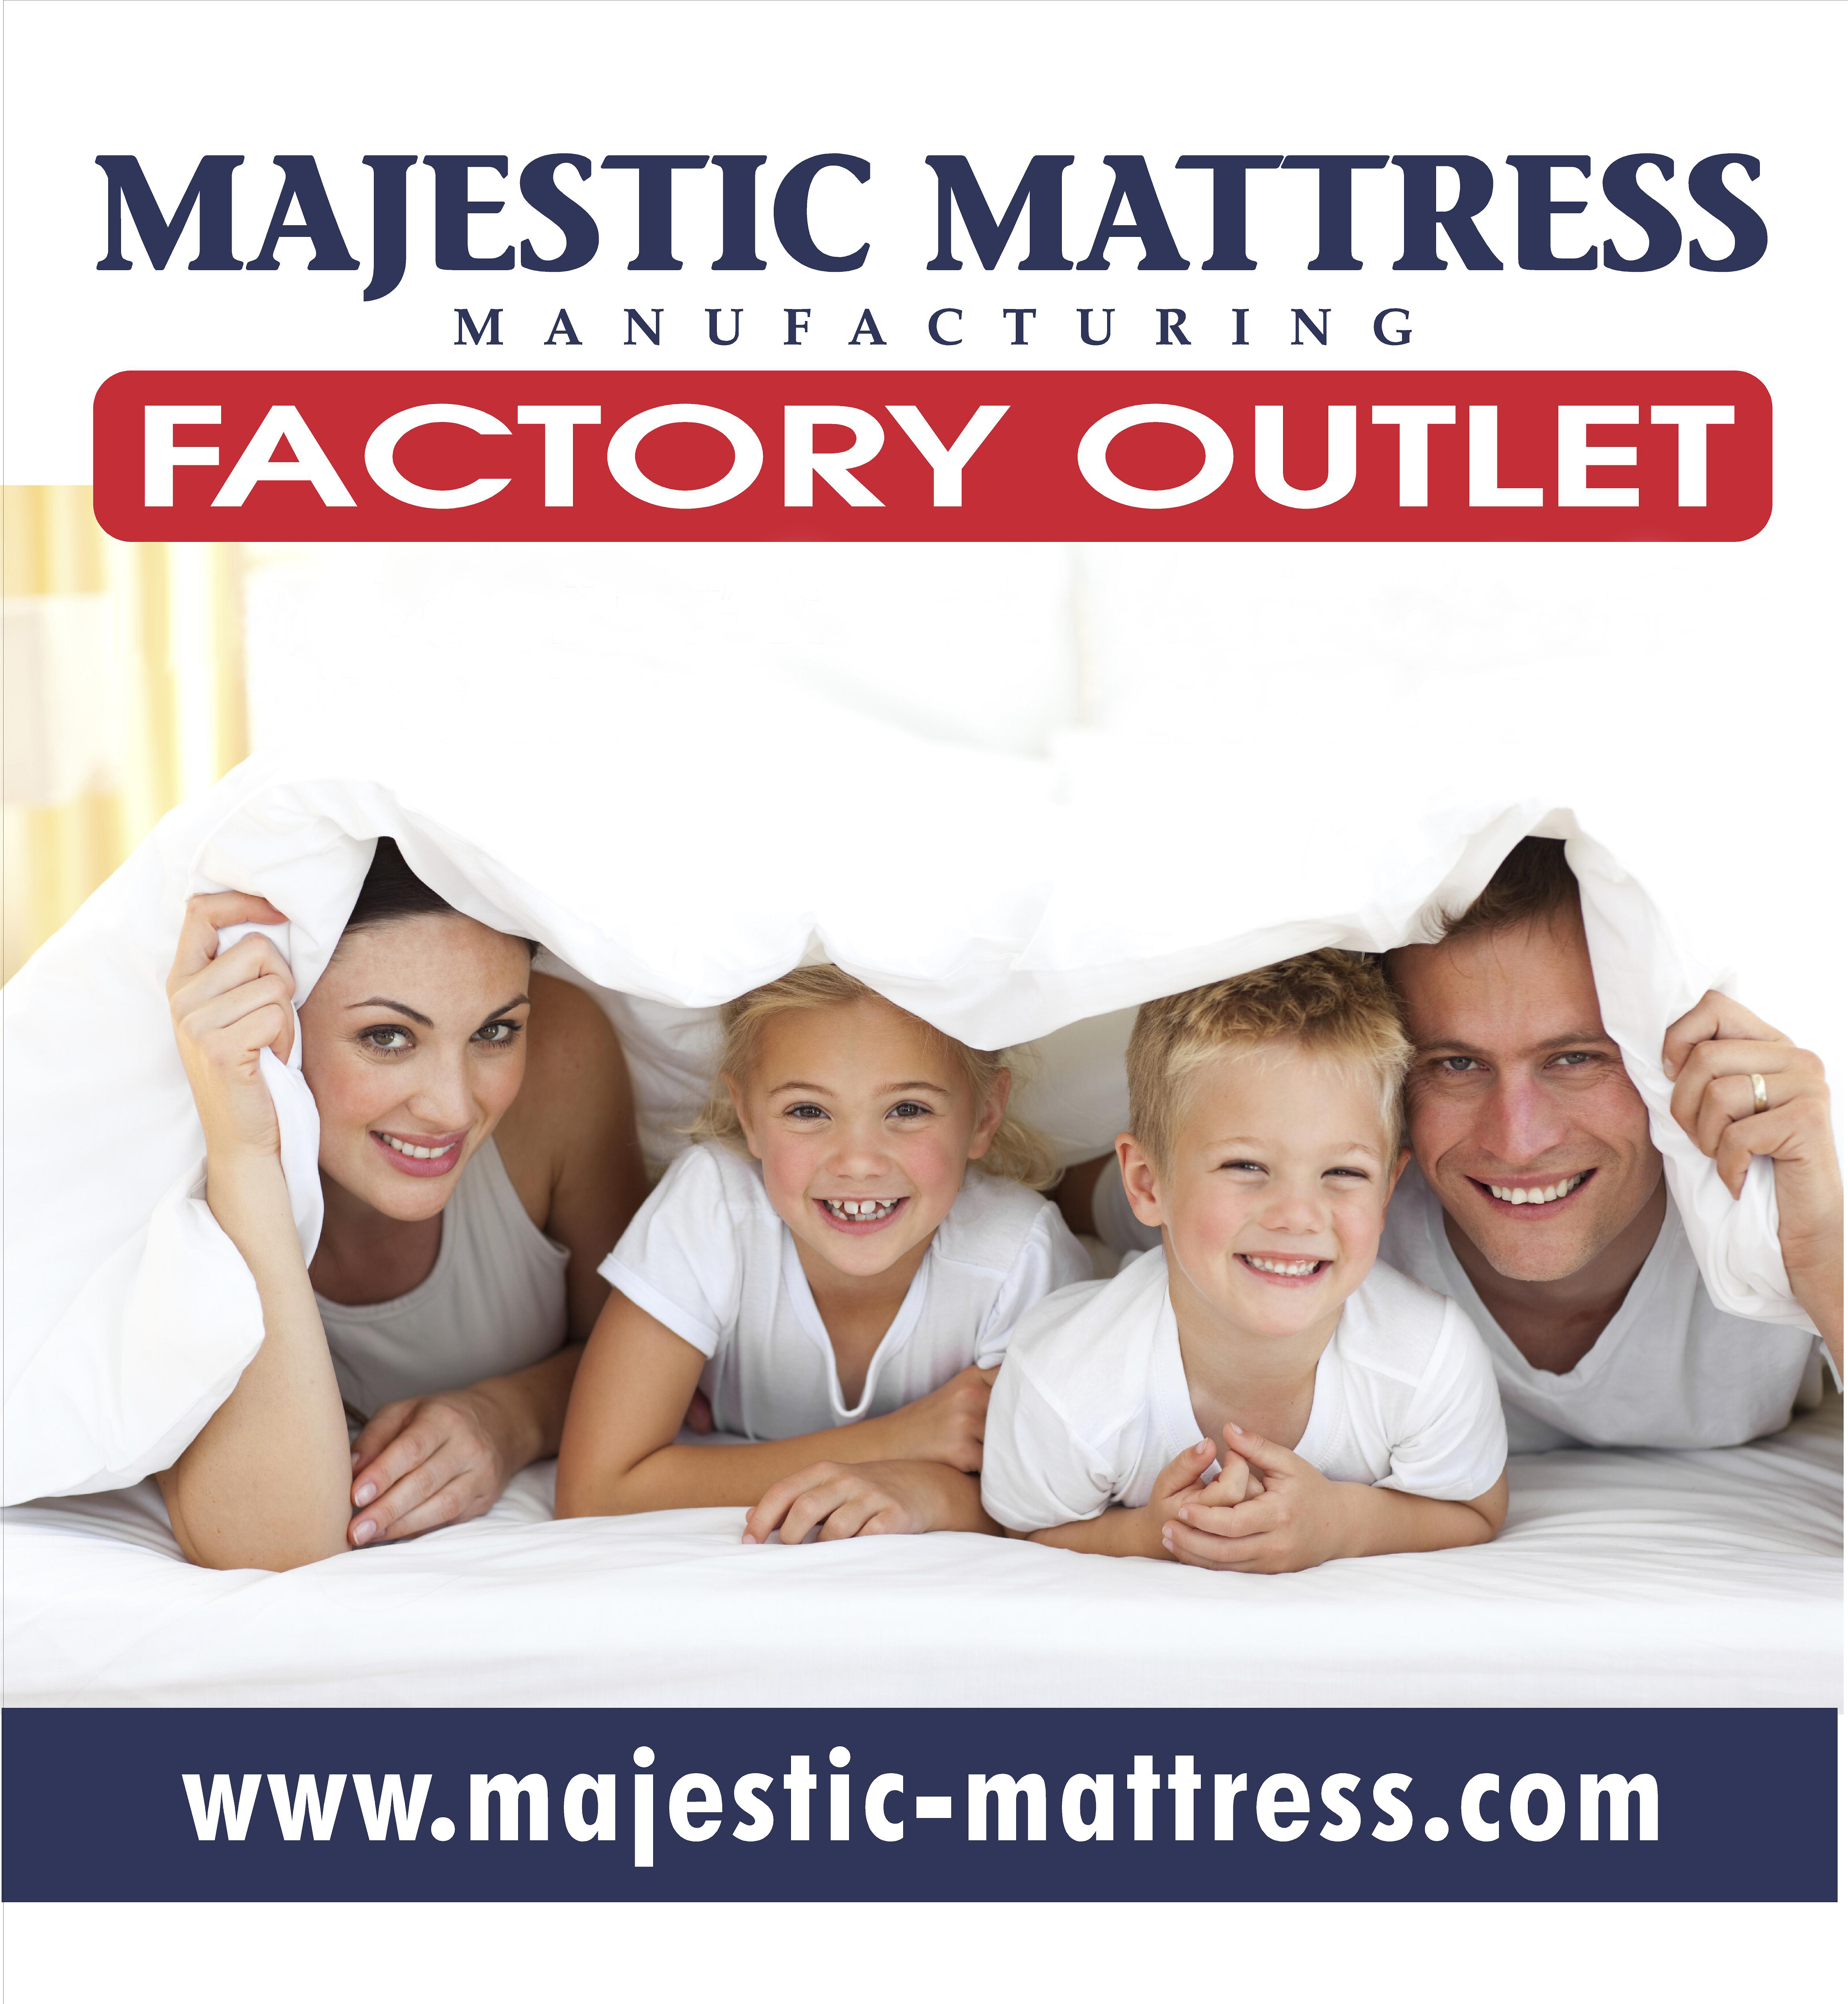 Majestic Mattress Mfg. Ltd. logo